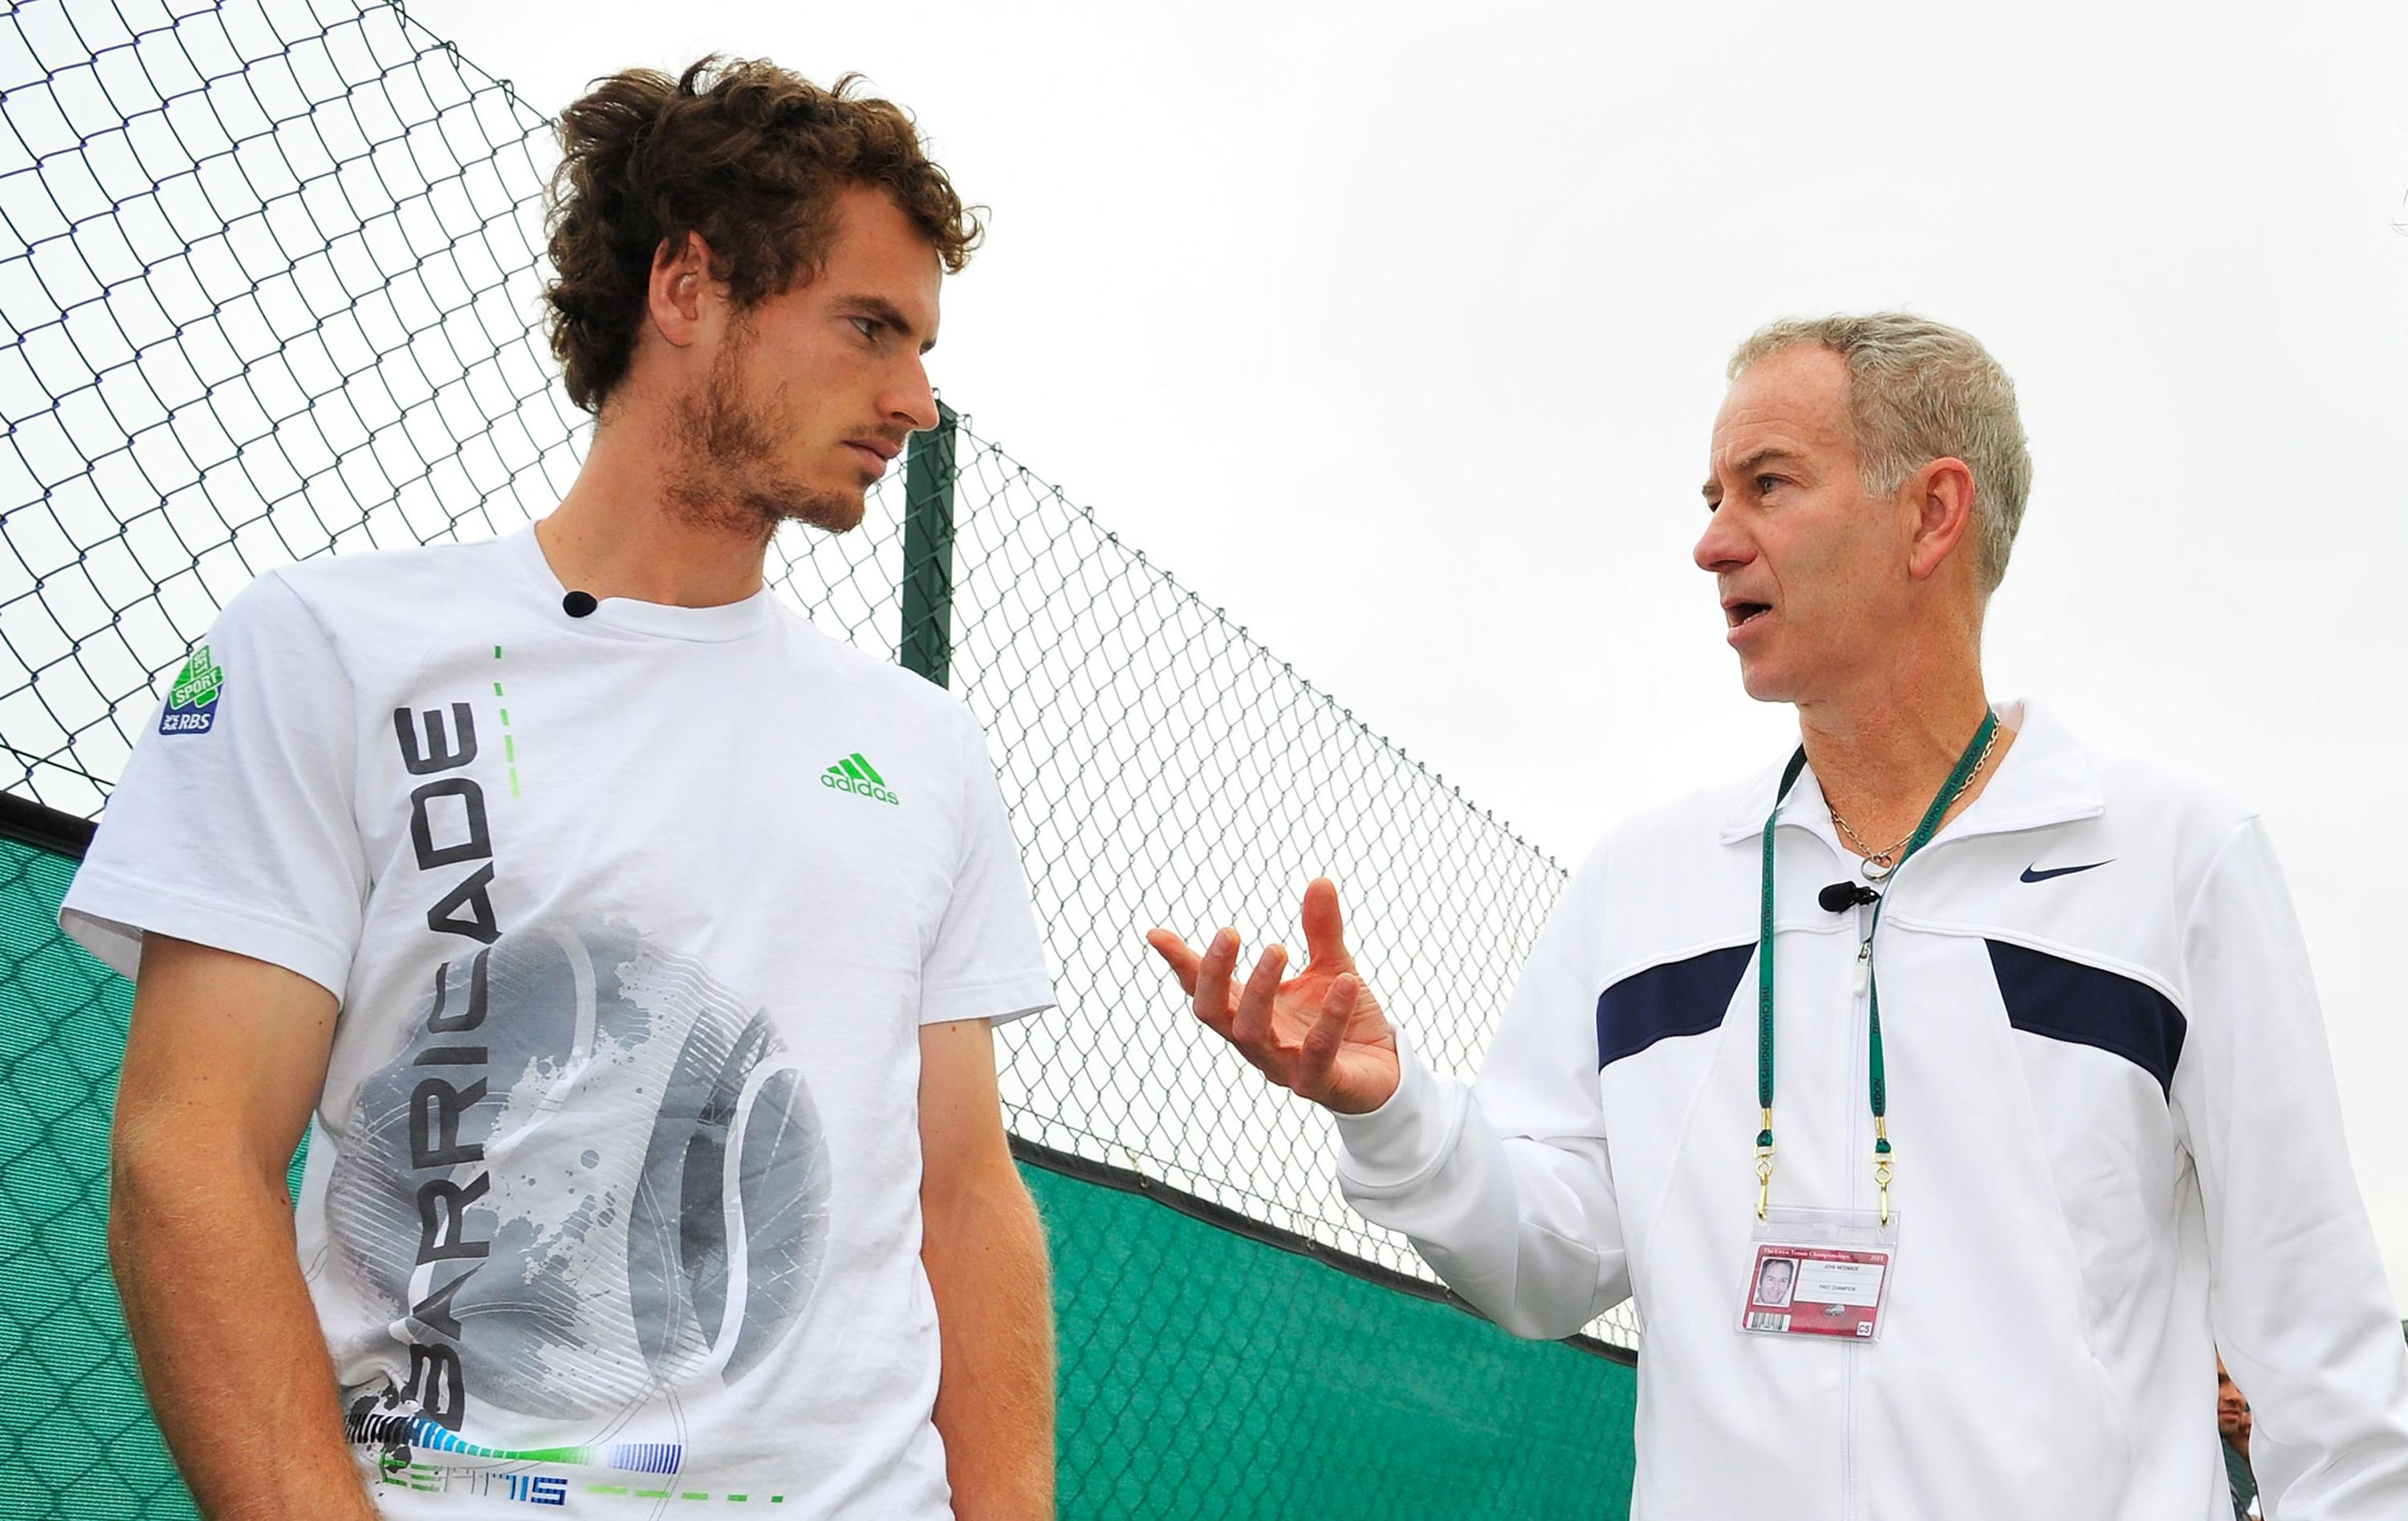 Andy Murray is struggling to be fit for Wimbledon